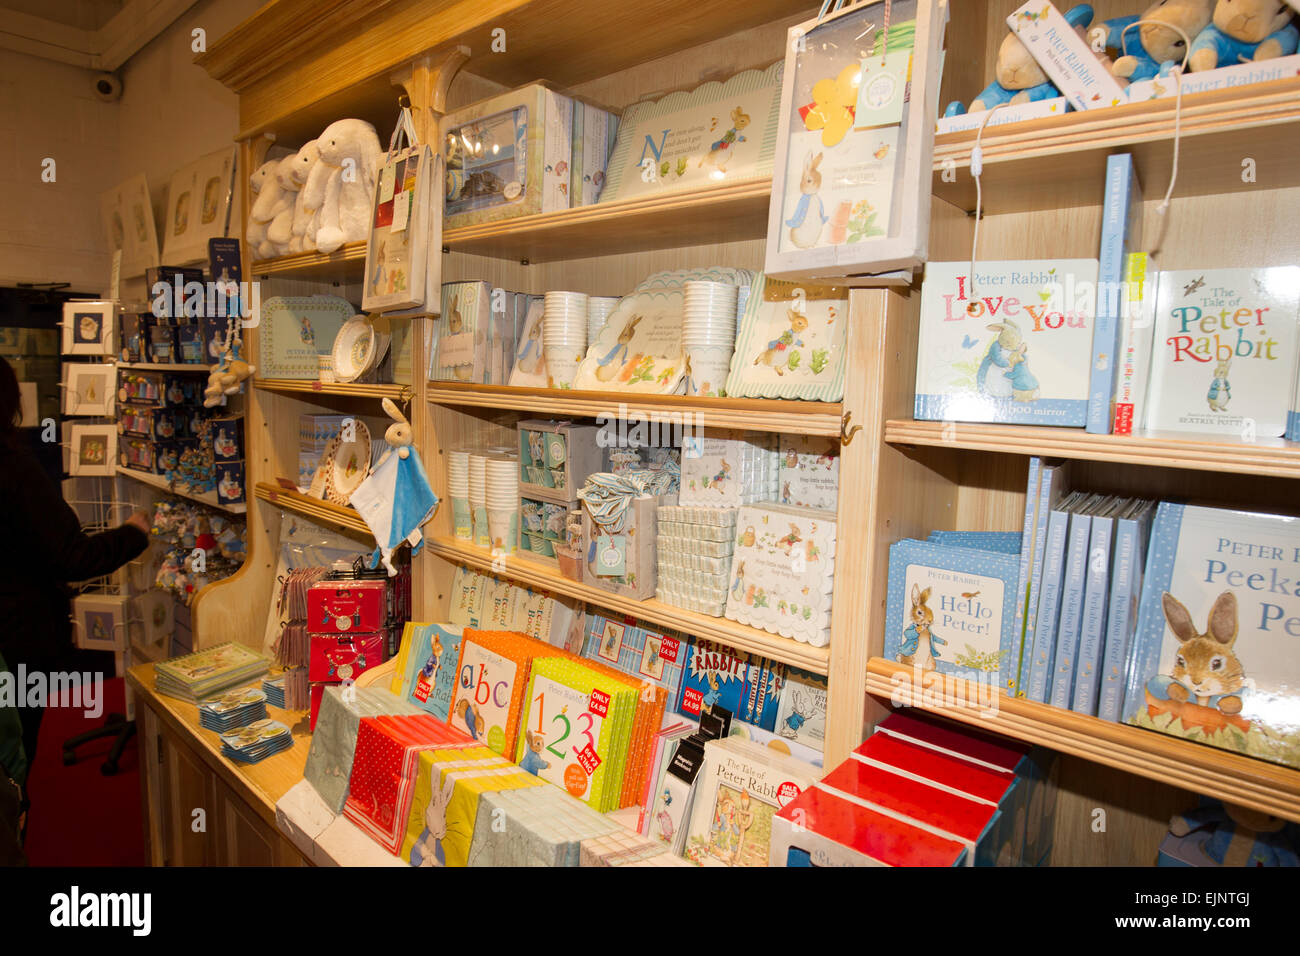 The World of Beatrix Potter attraction - Stock Image